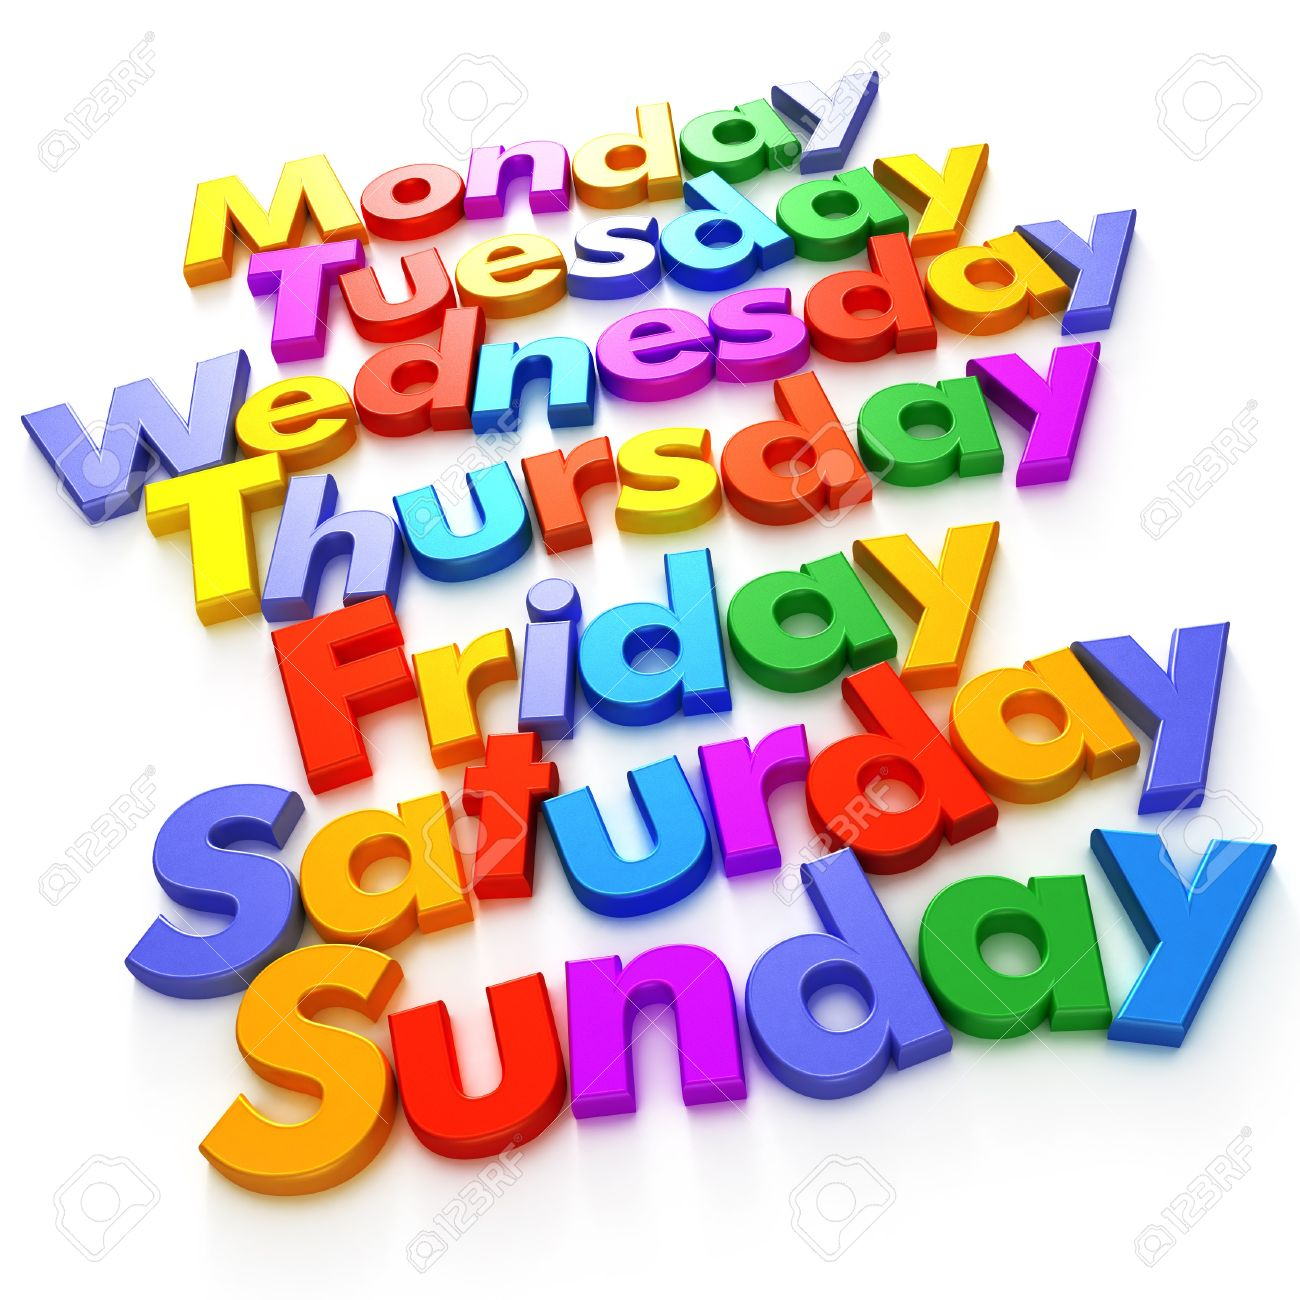 Days Of The Week Formed With Colourful Letter Magnets Stock Photo.